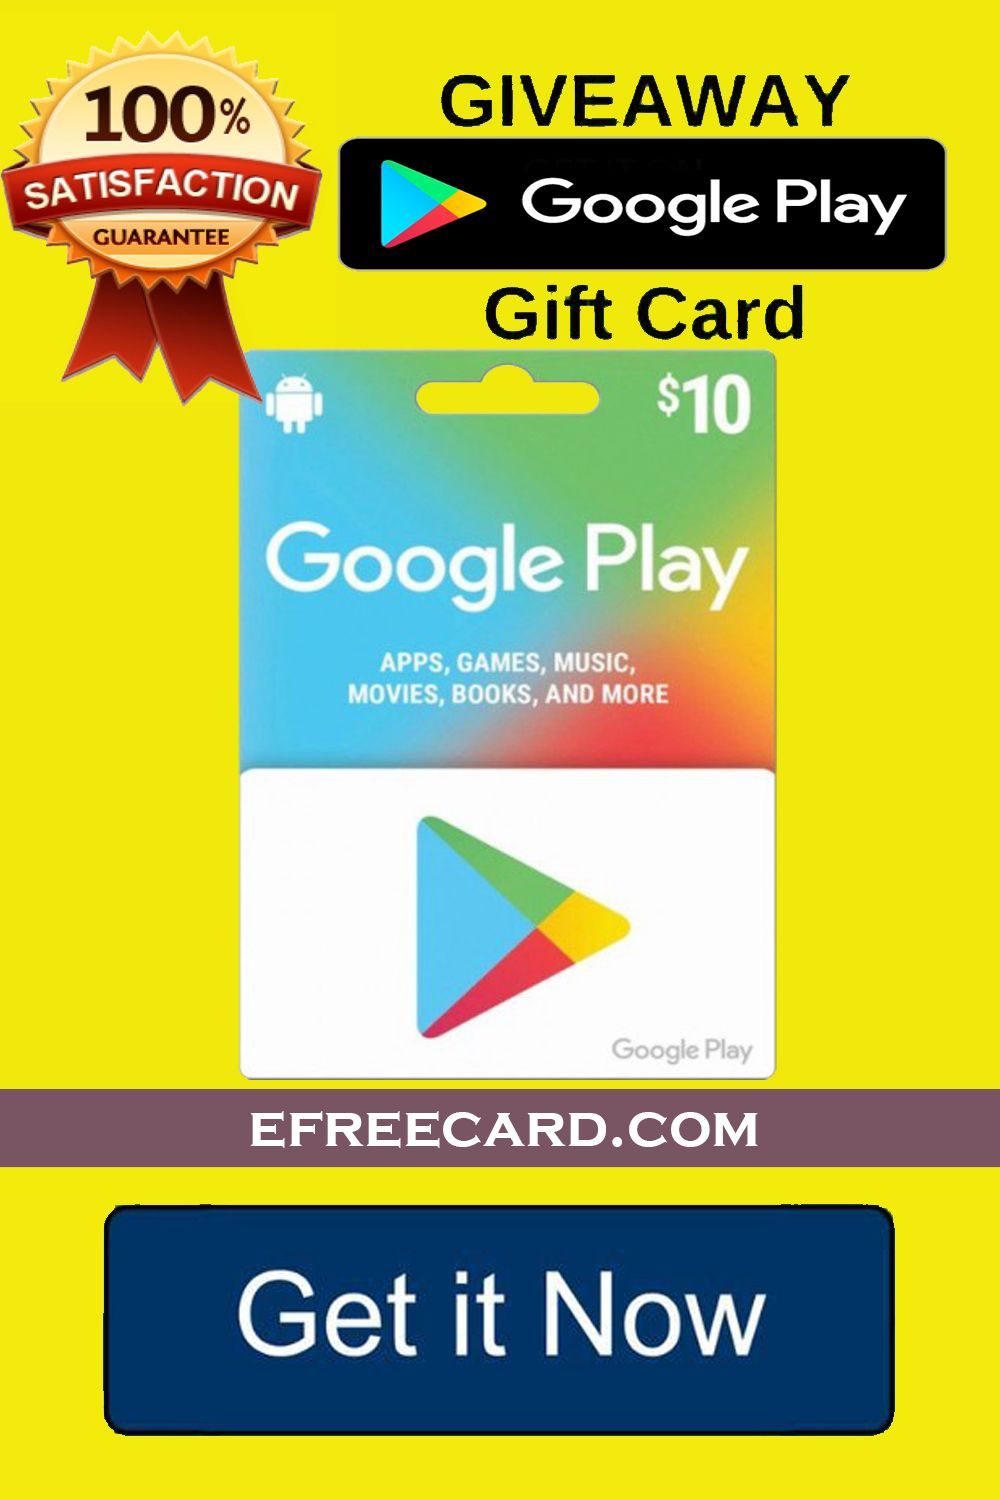 How To Get Redeem Code For Playstore In 2020 Google Play Gift Card Win Gift Card Gift Card Promotions